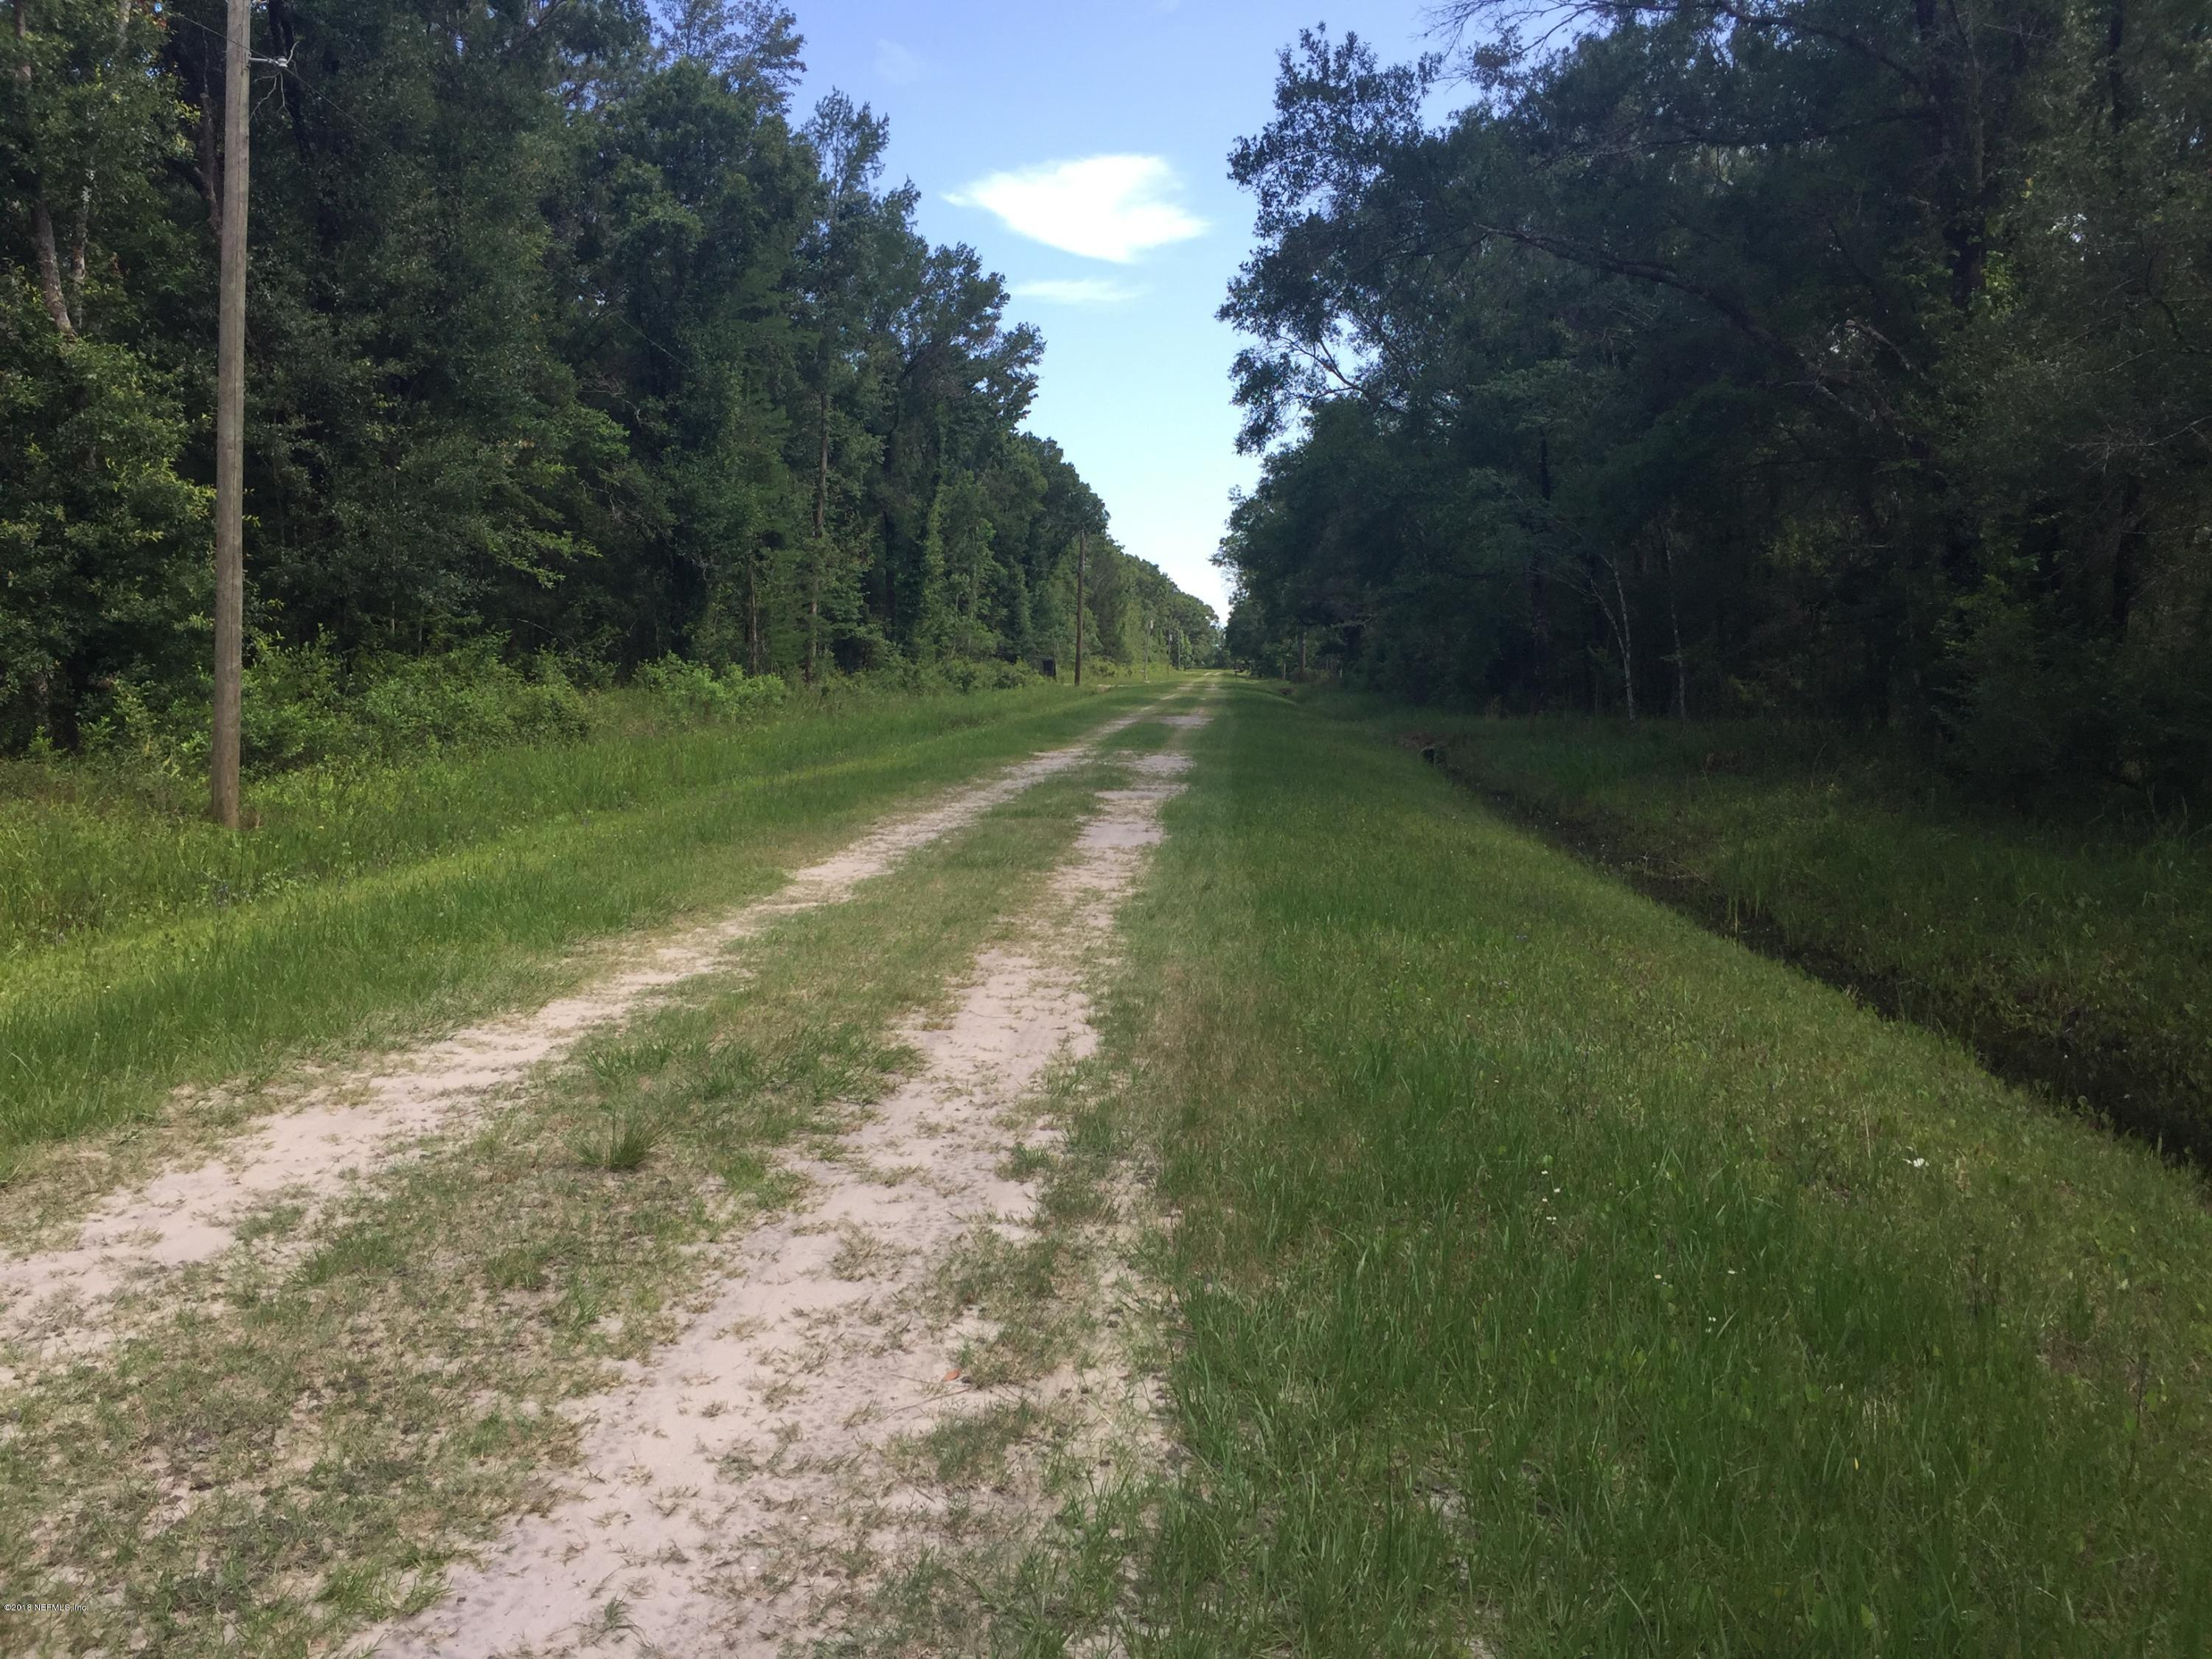 10240 STYCKET, HASTINGS, FLORIDA 32145, ,Vacant land,For sale,STYCKET,938755